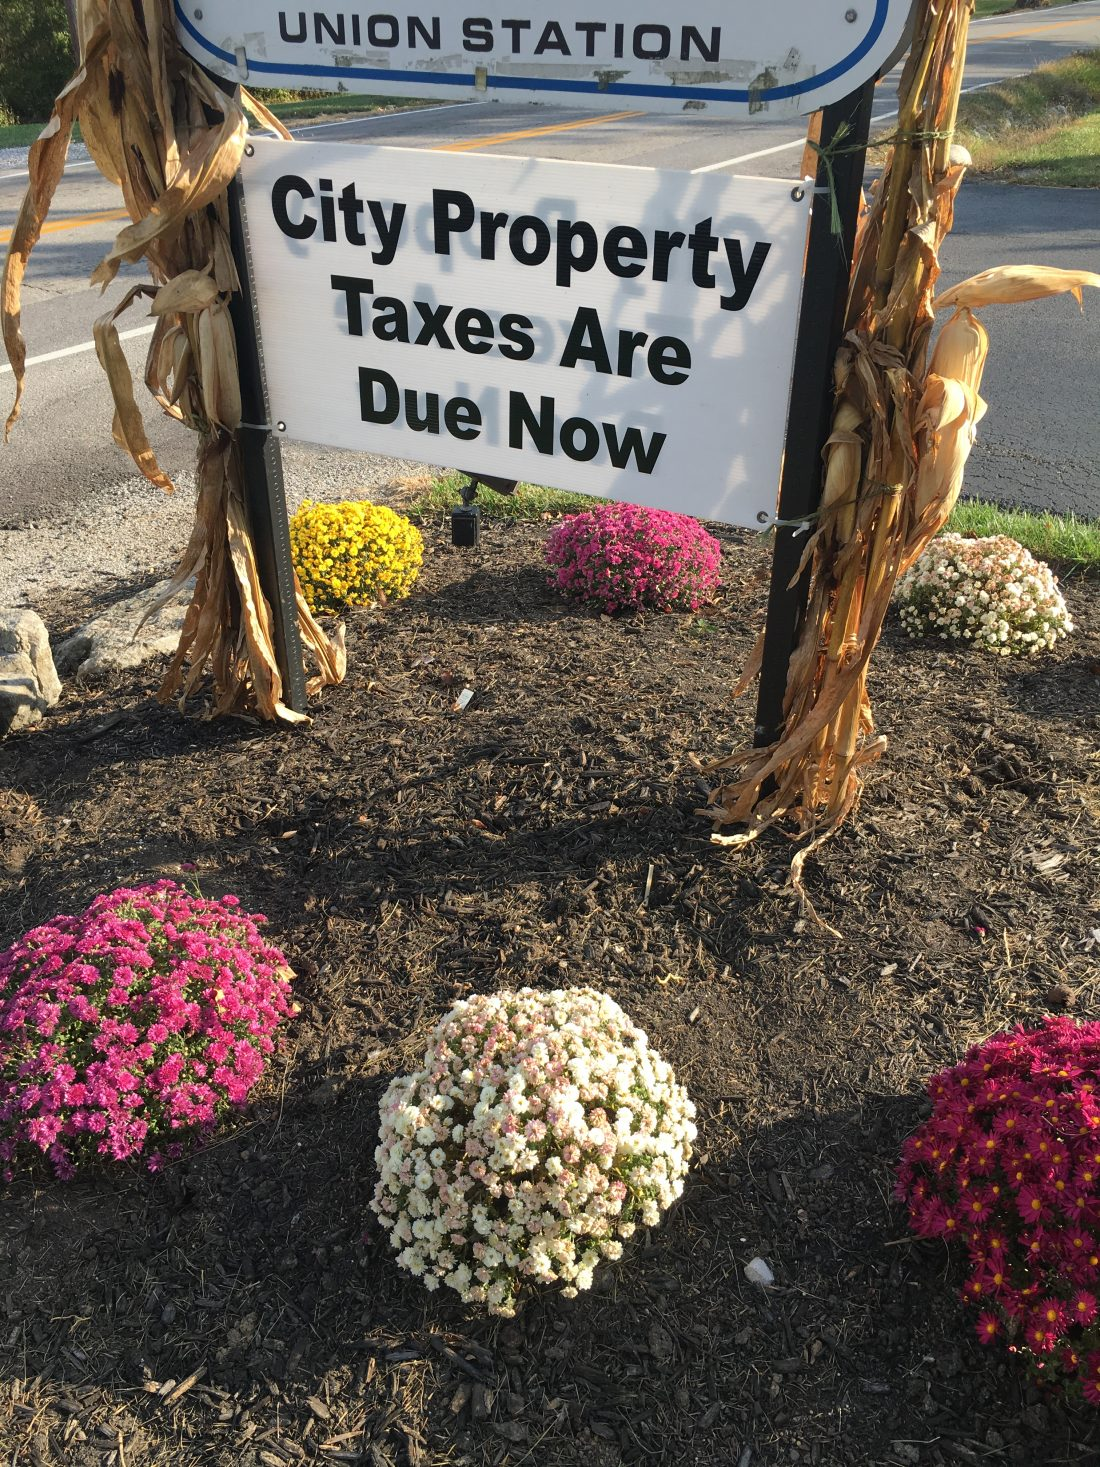 photo of the city tax sign